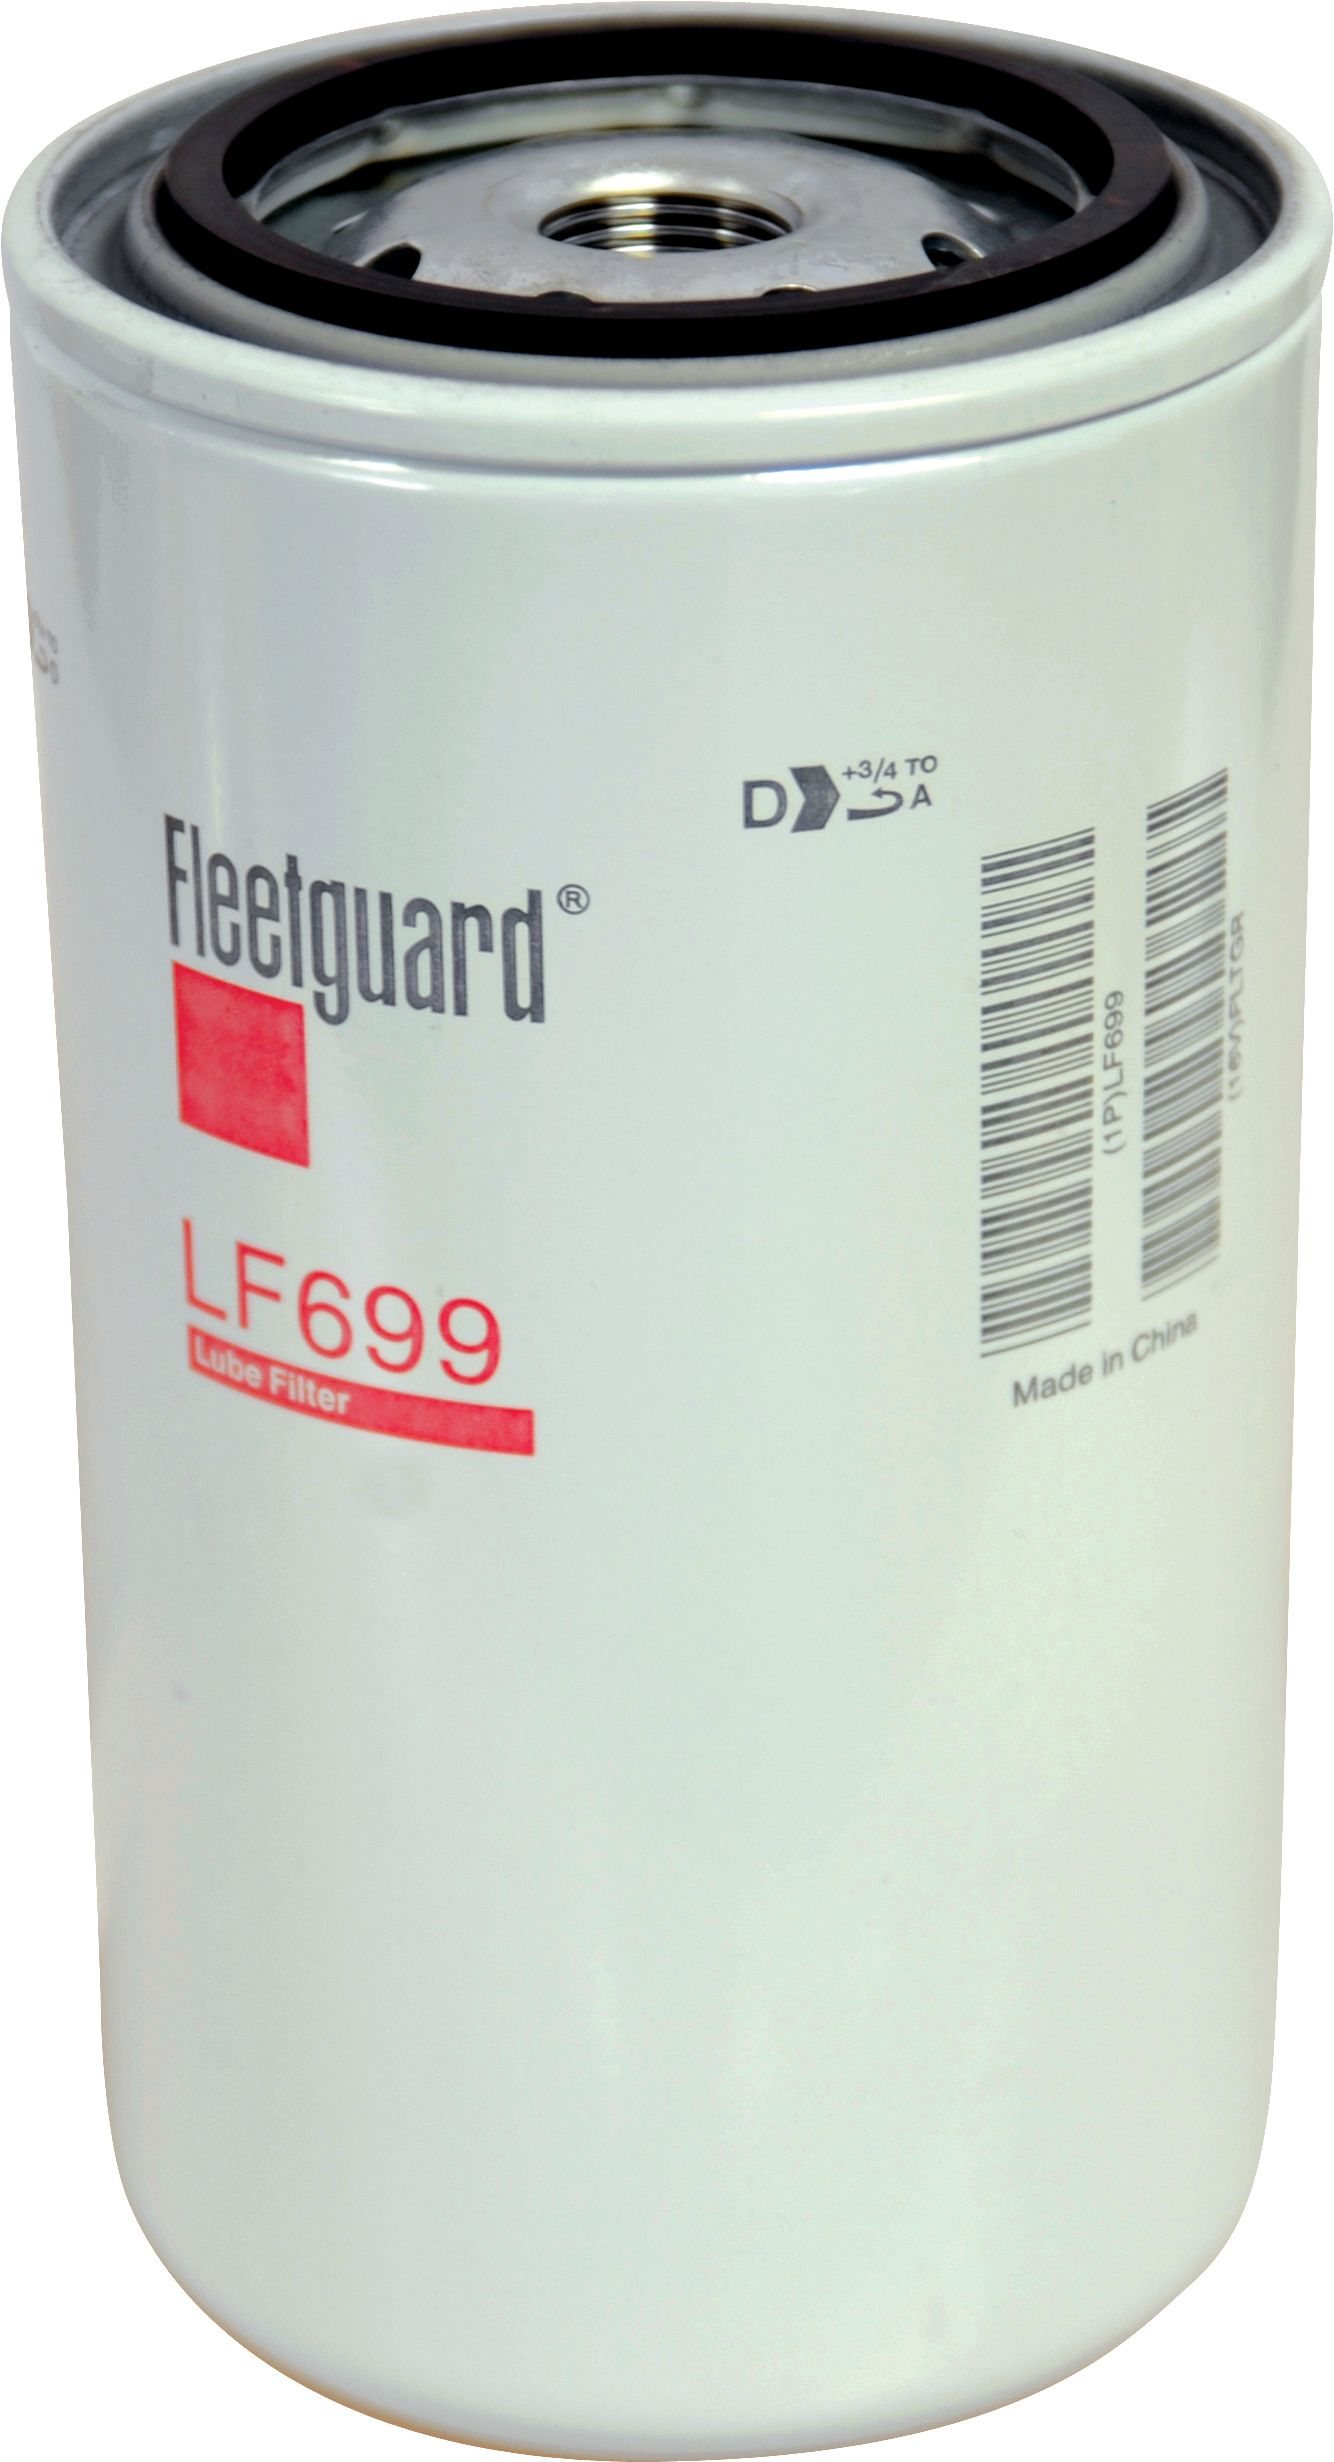 MANITOU OIL FILTER LF699 109512